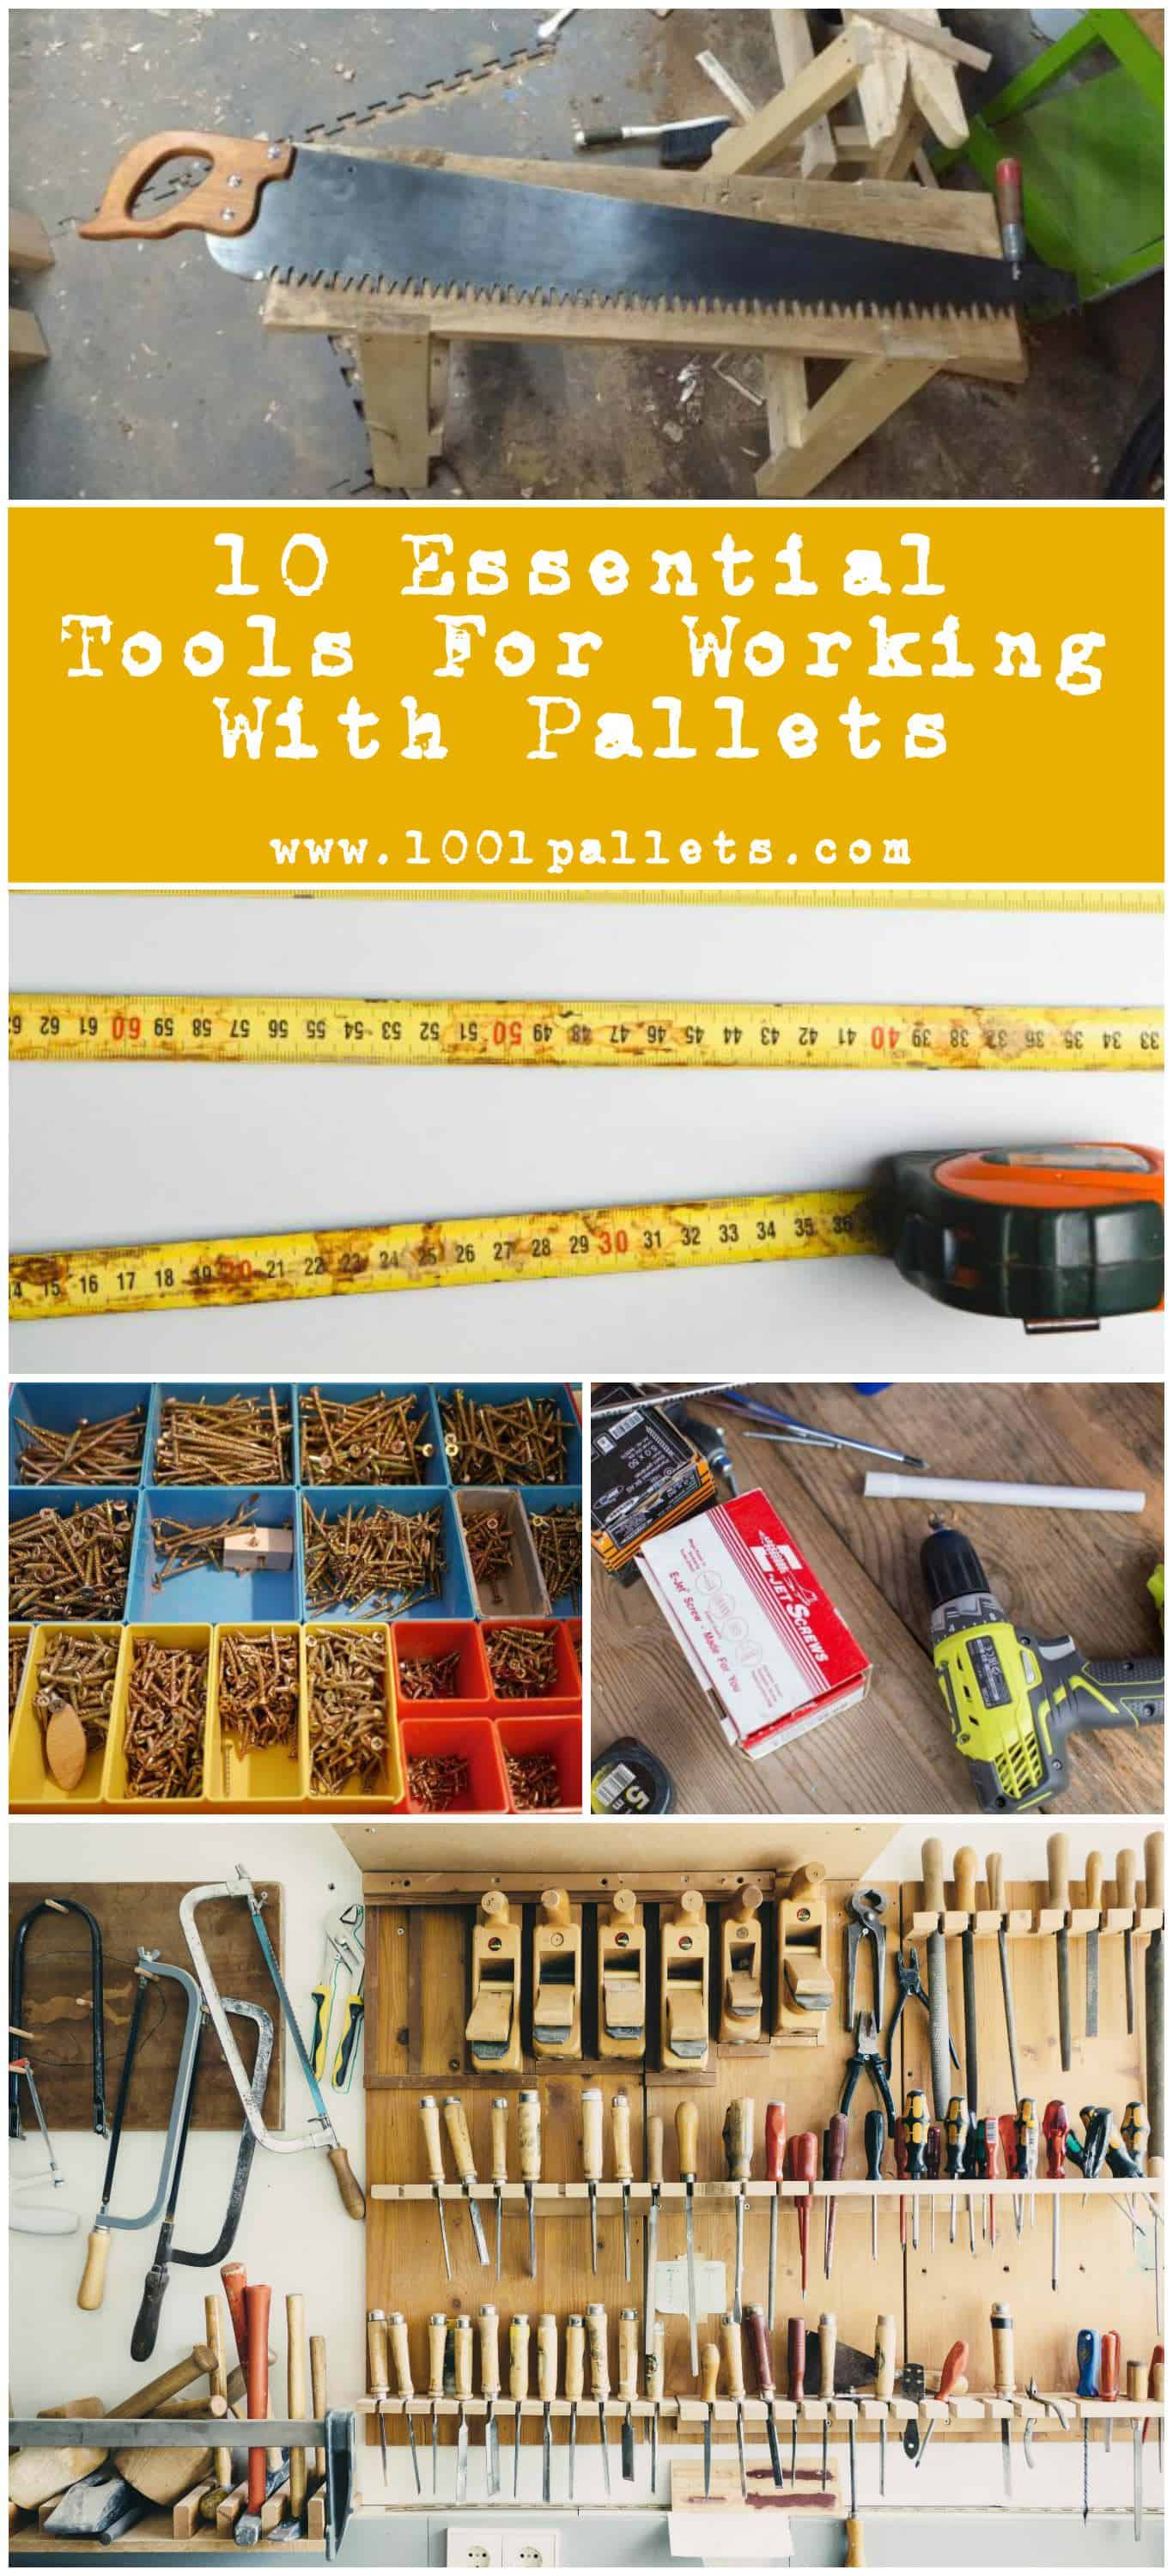 Working with pallets 5 essential woodworking power tools that won - 10 Essential Tools For Working With Pallets Pallet Ideas 1001 Pallets